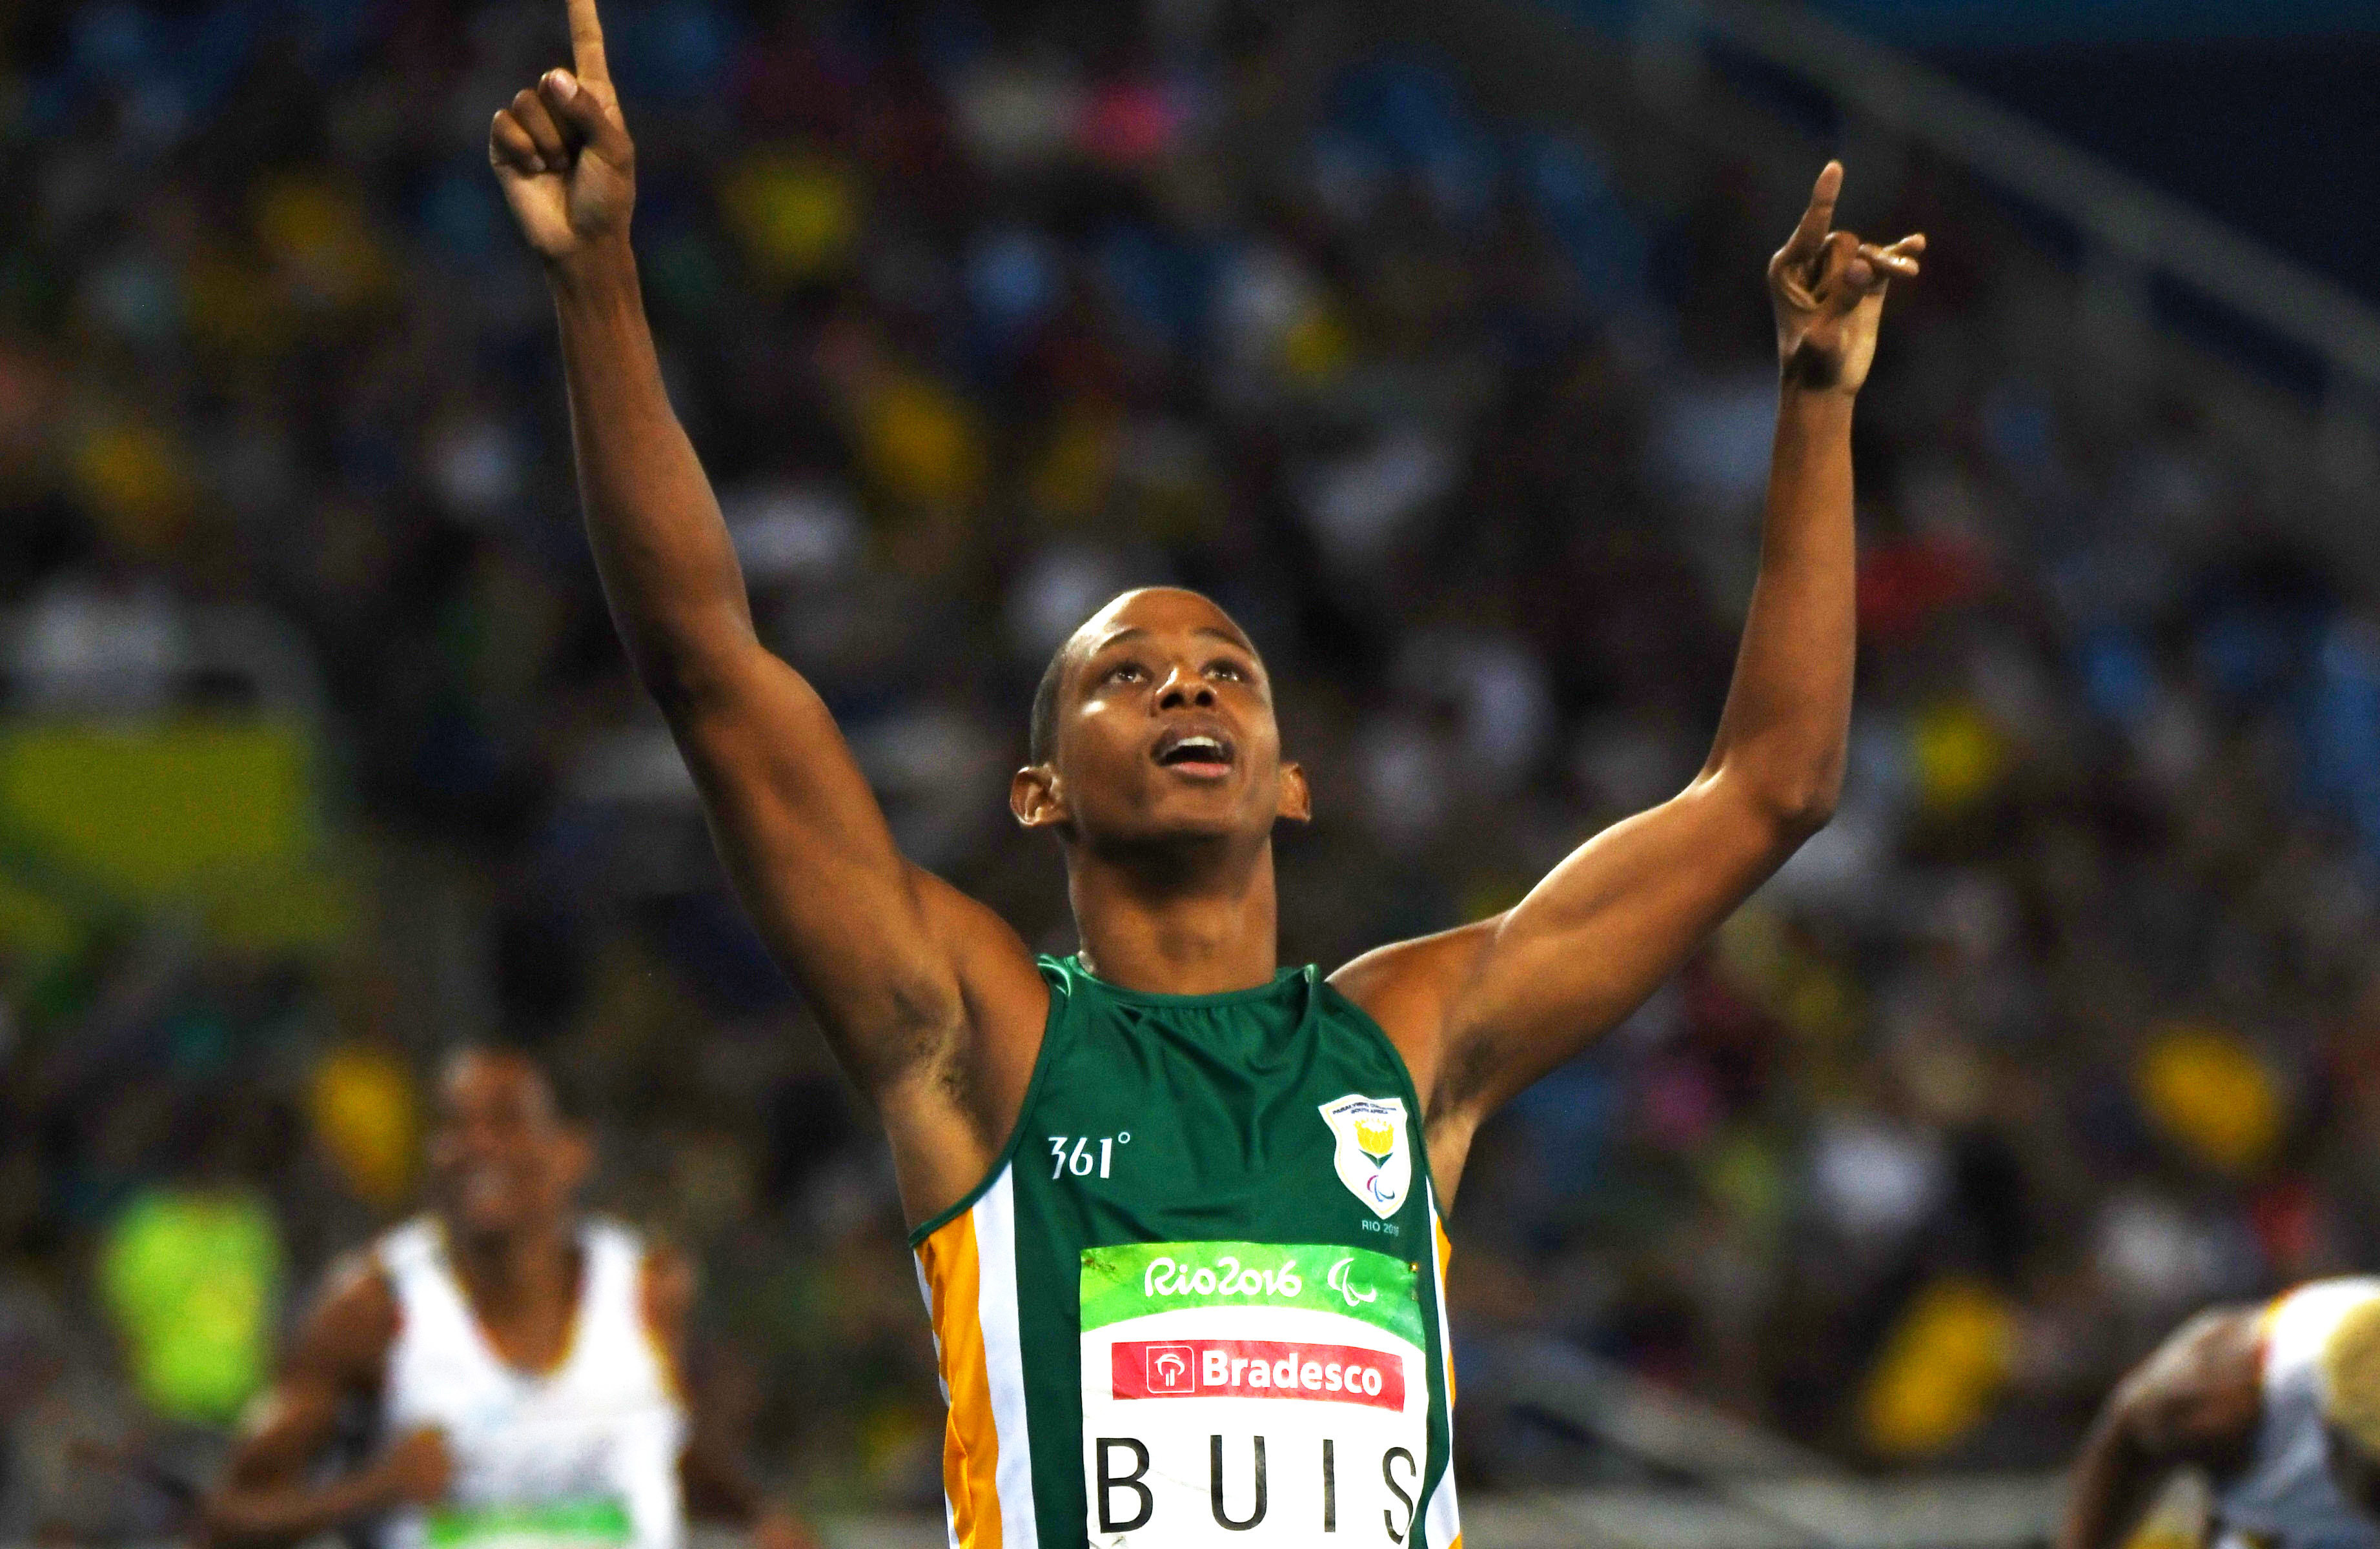 Dyan, Hilton help Team SA to two more medals in Rio